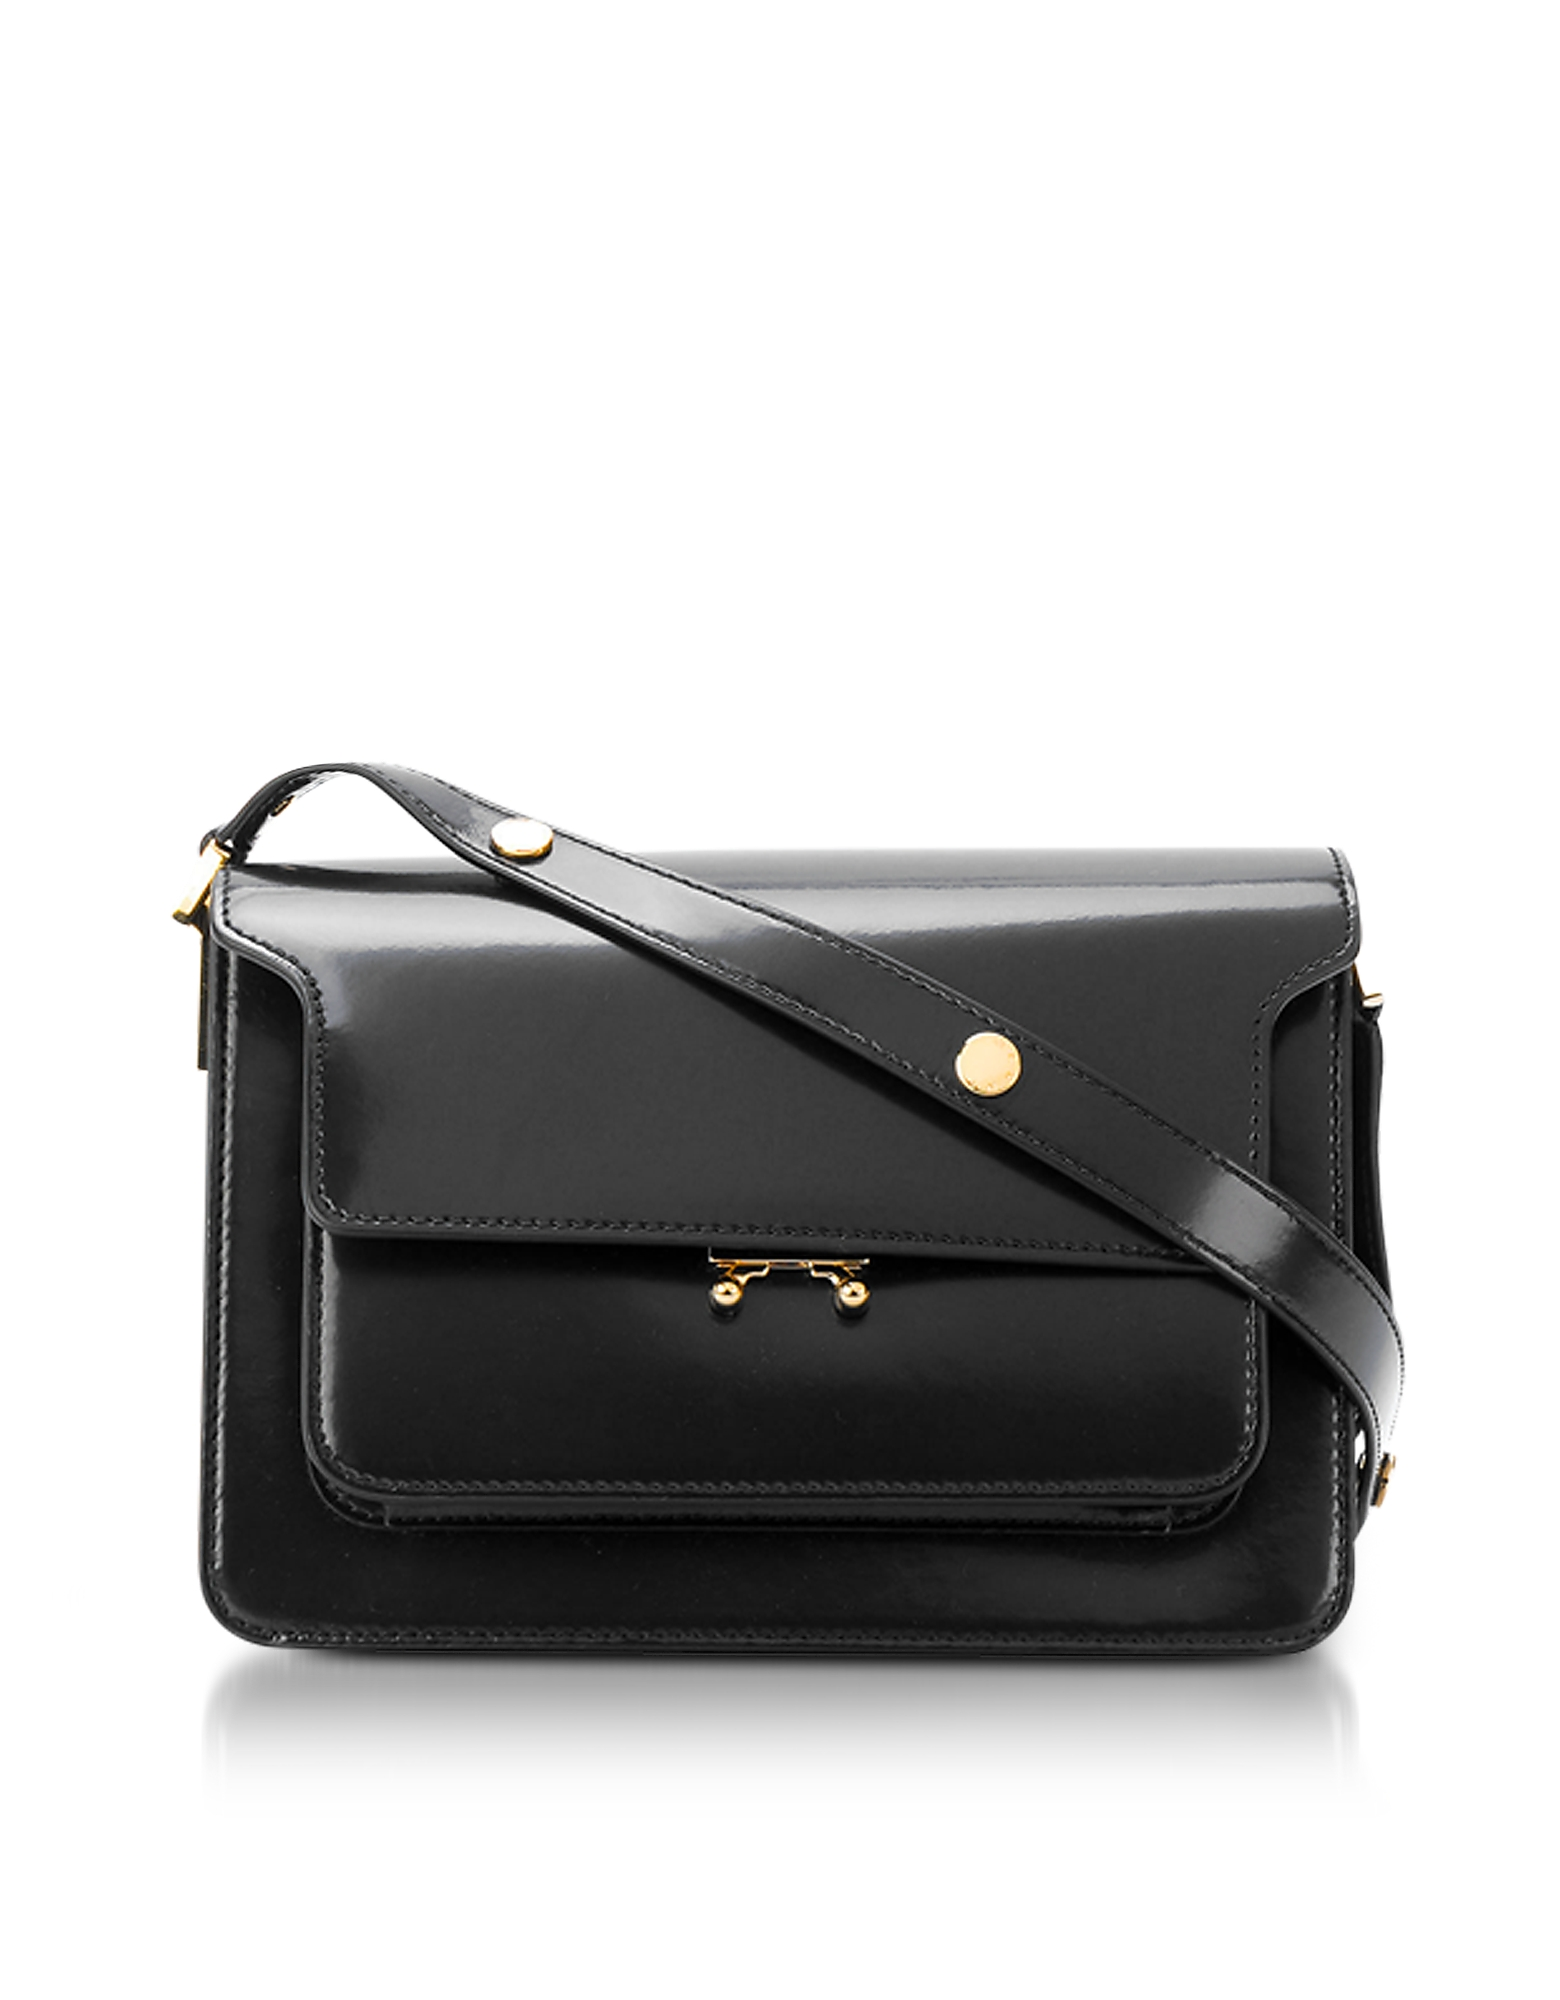 Black Patent Leather Trunk Bag